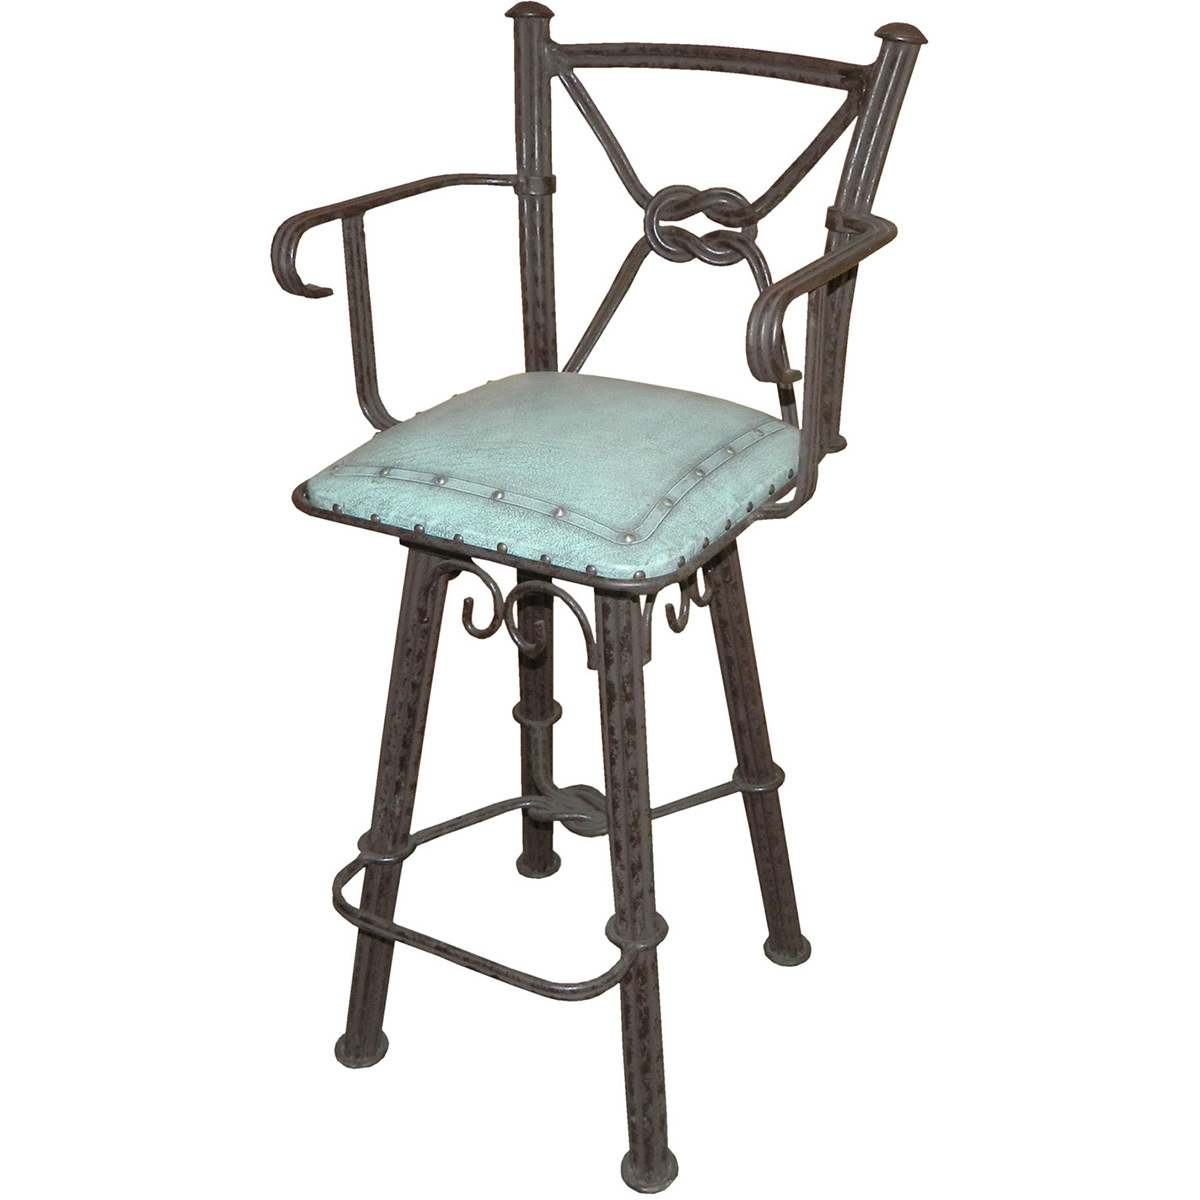 Western Iron Barstool with Back & Swivel - Turquoise